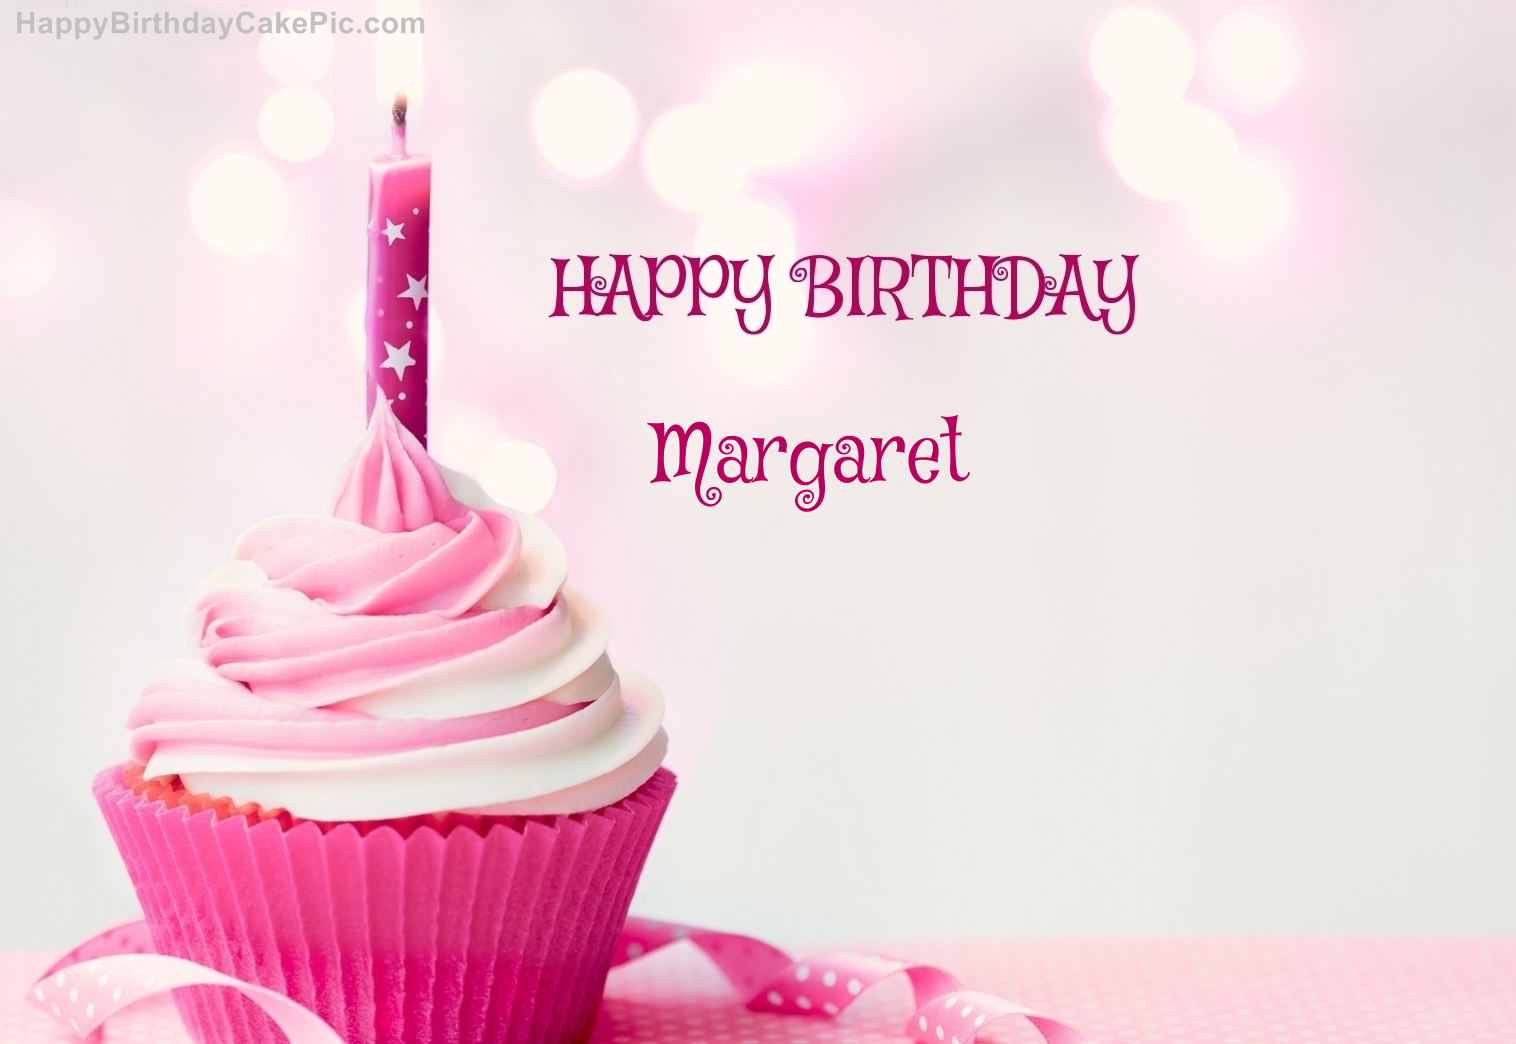 Happy Birthday Cupcake Candle Pink Cake For Margaret